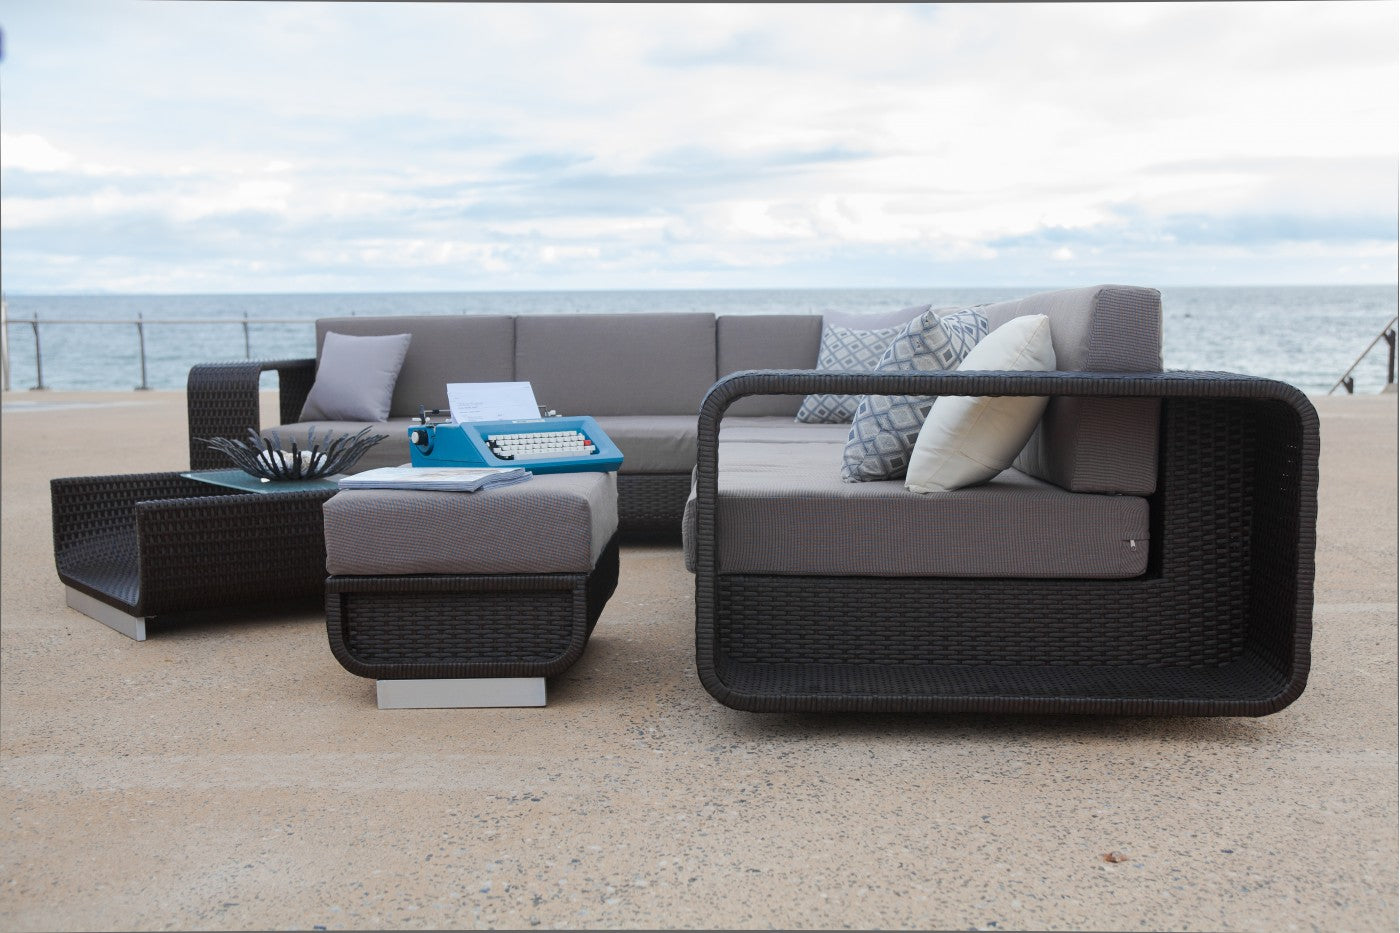 Outdoor furniture online australia interiors online for Best outdoor furniture material